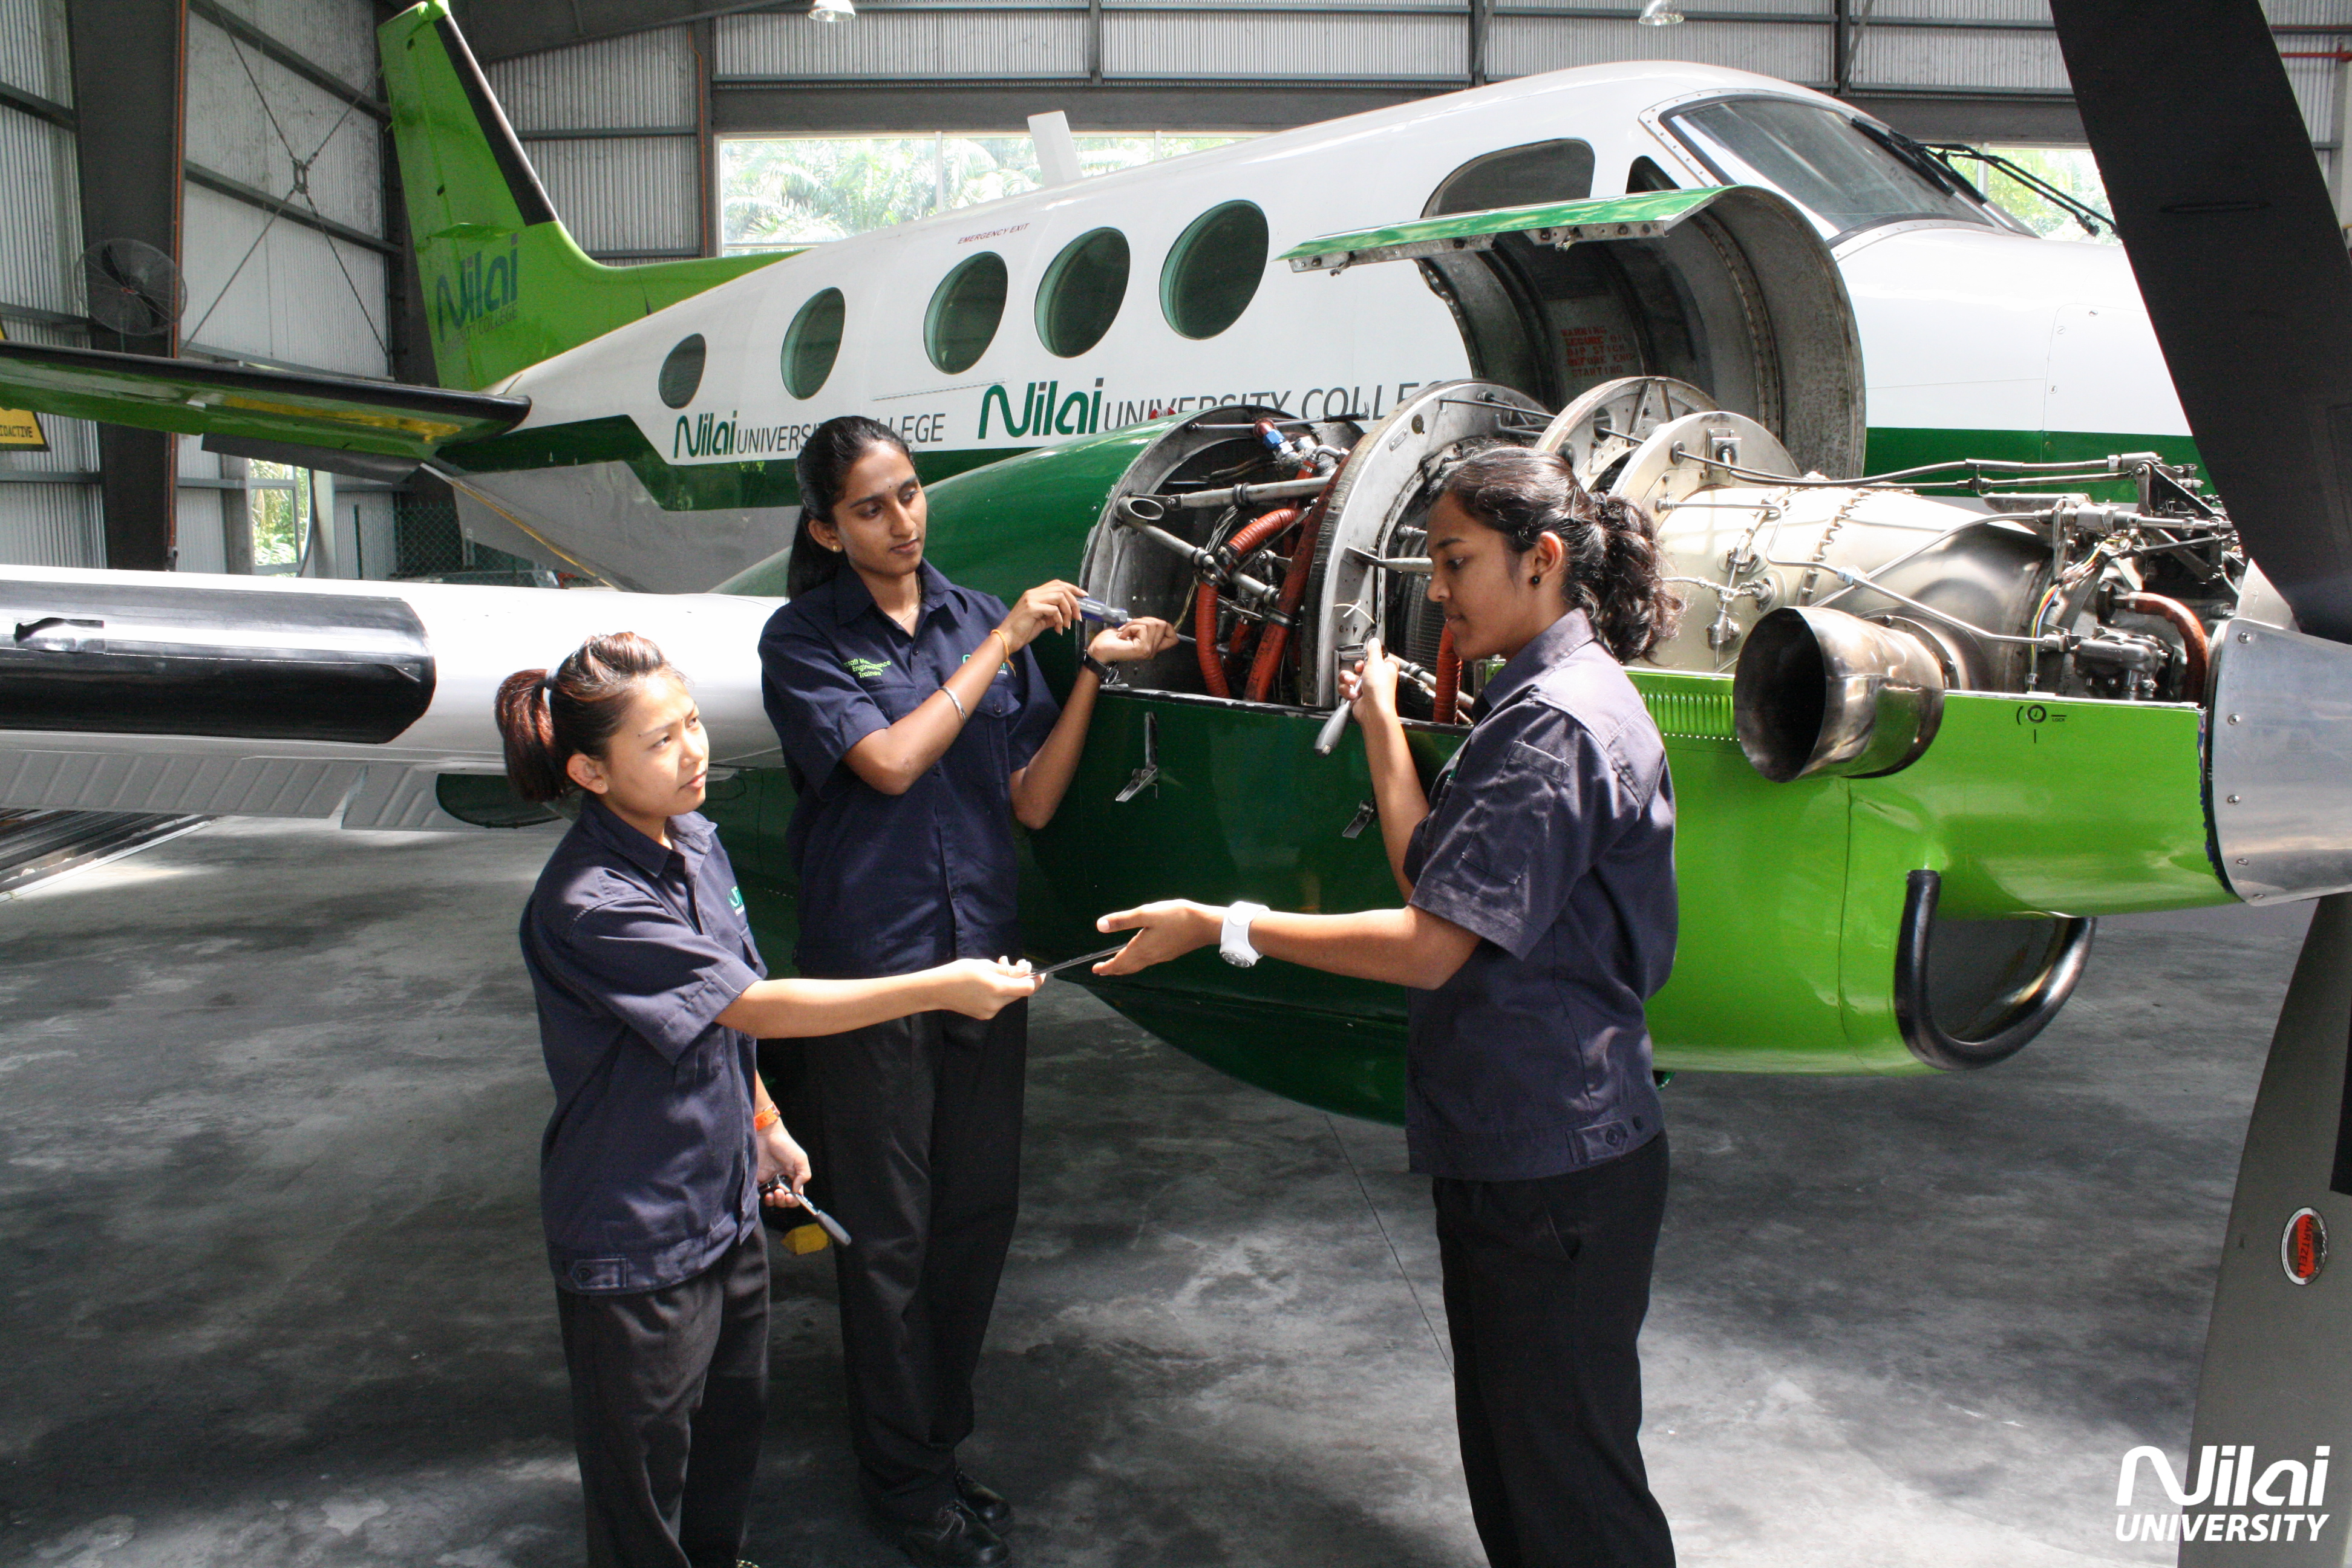 Aircraft Mechanic civil engineering subjects in college